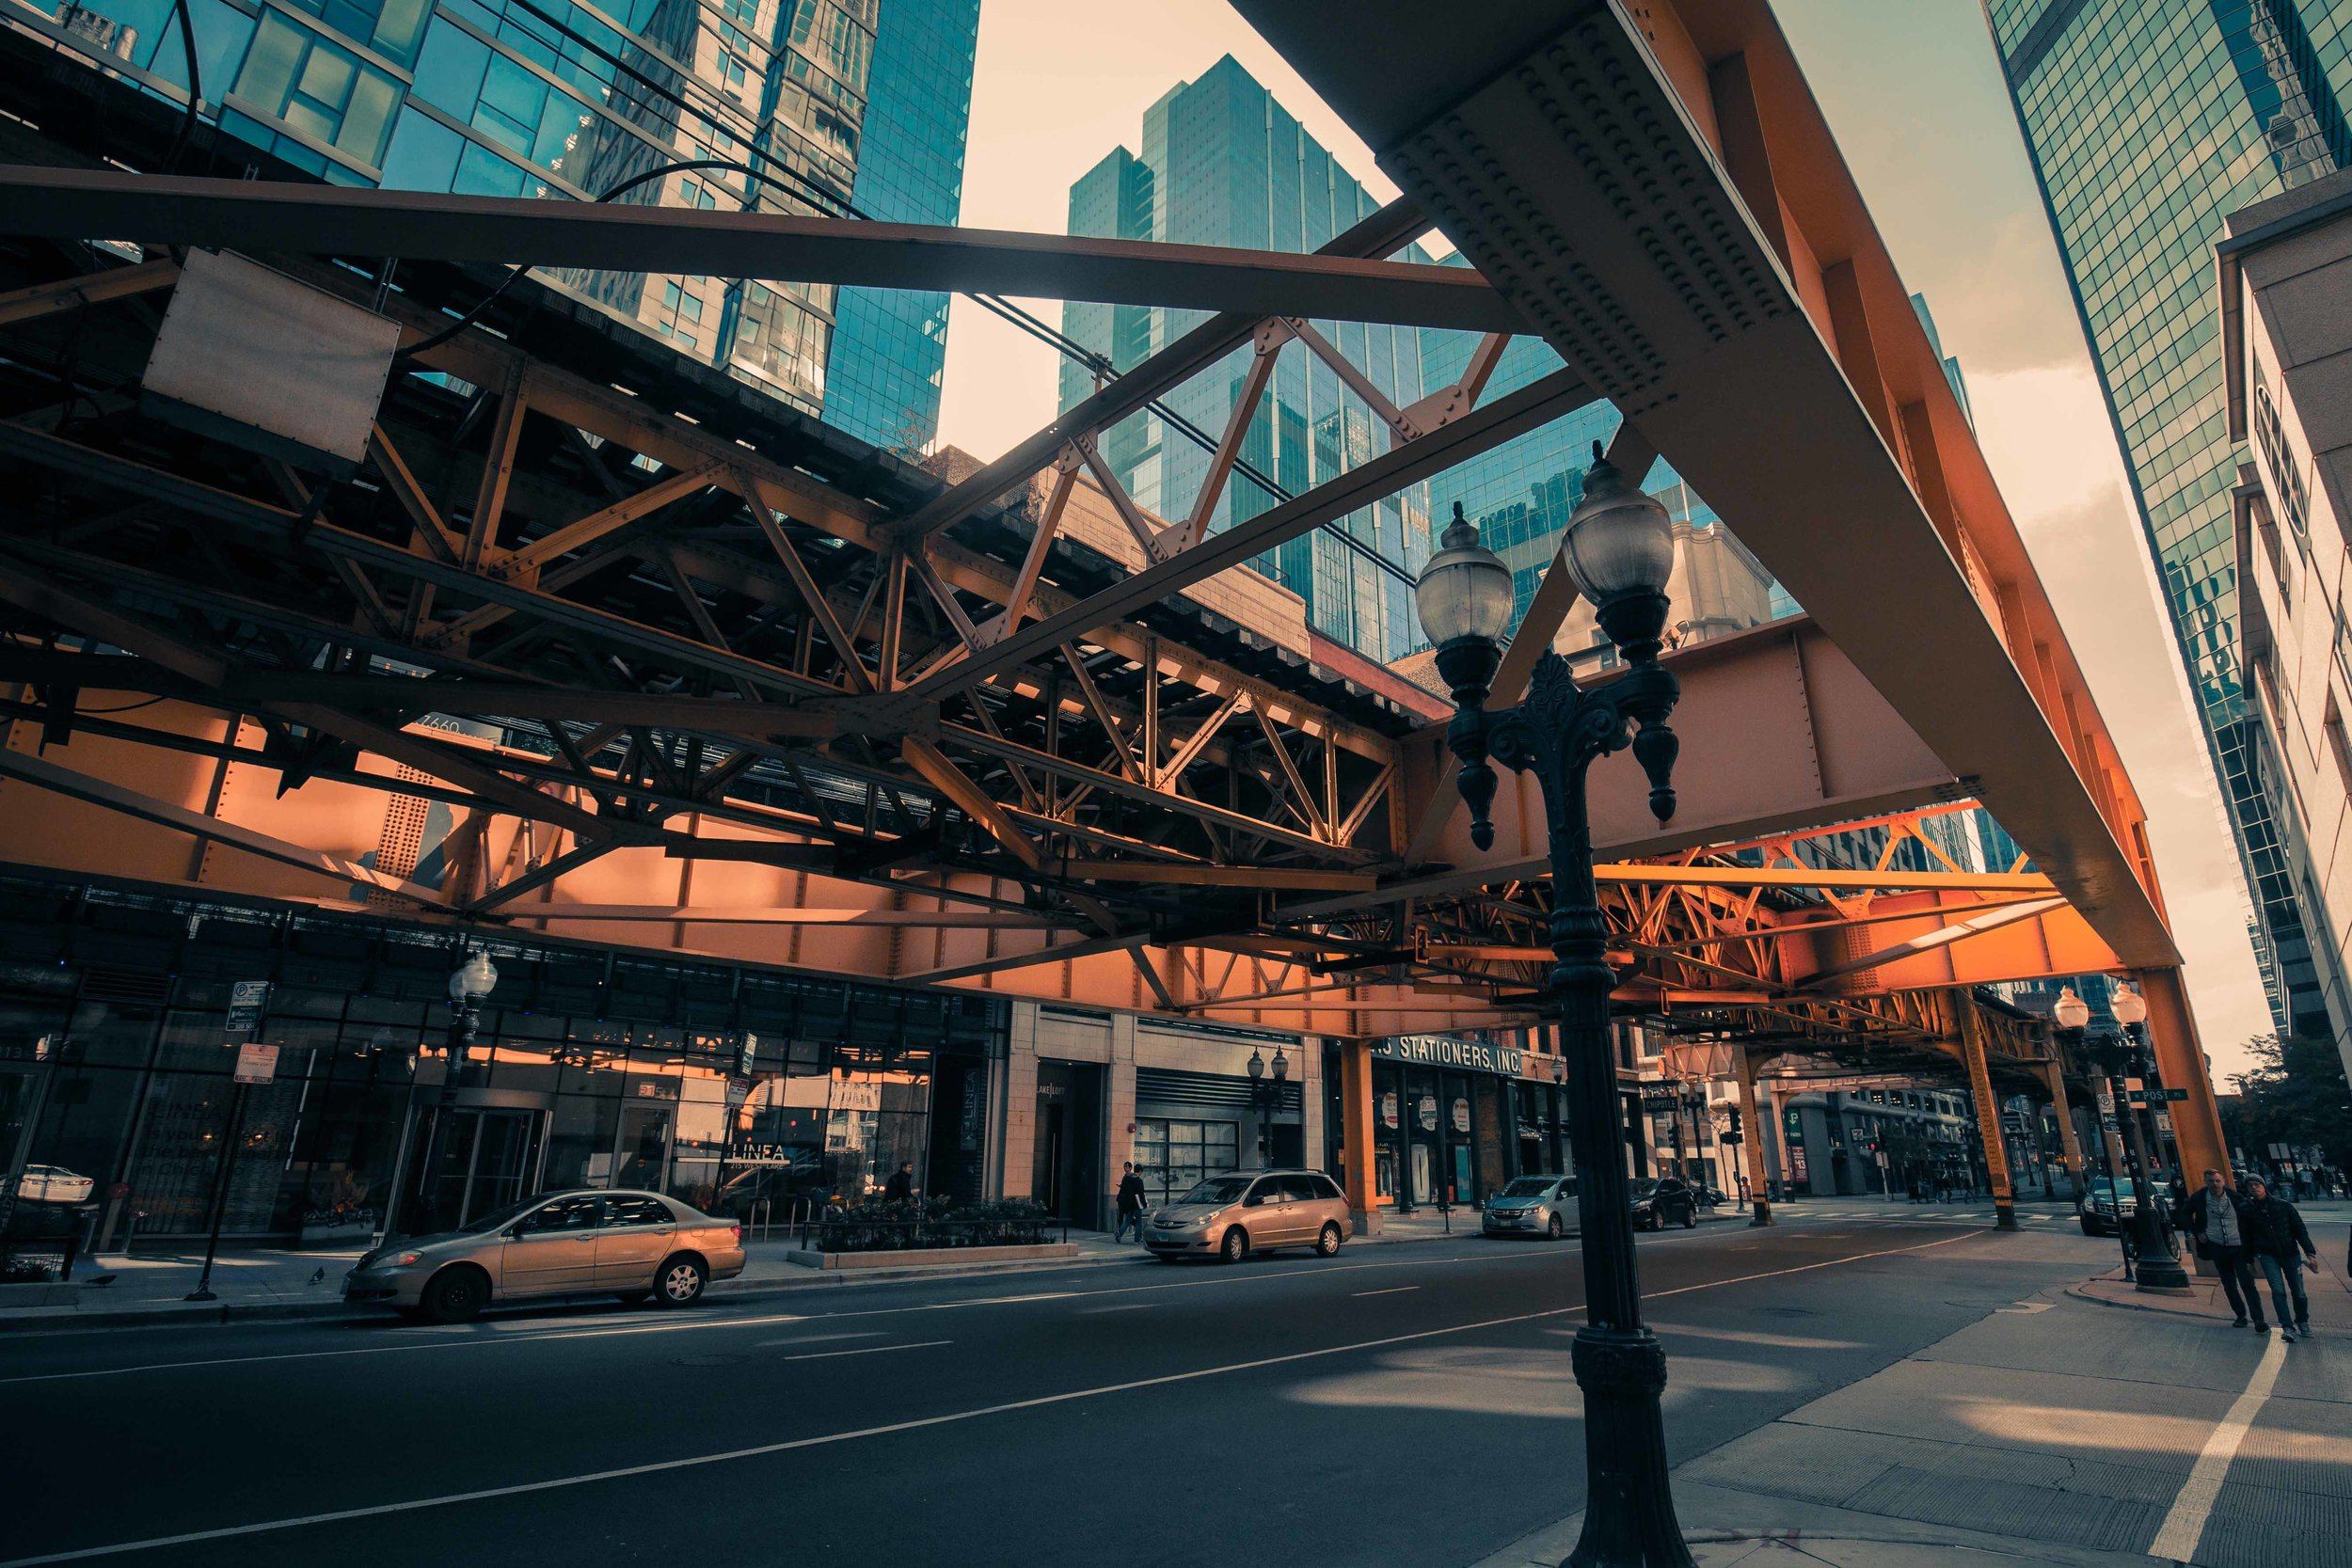 Elevated Tracks over La Salle Street - Chicago 2018